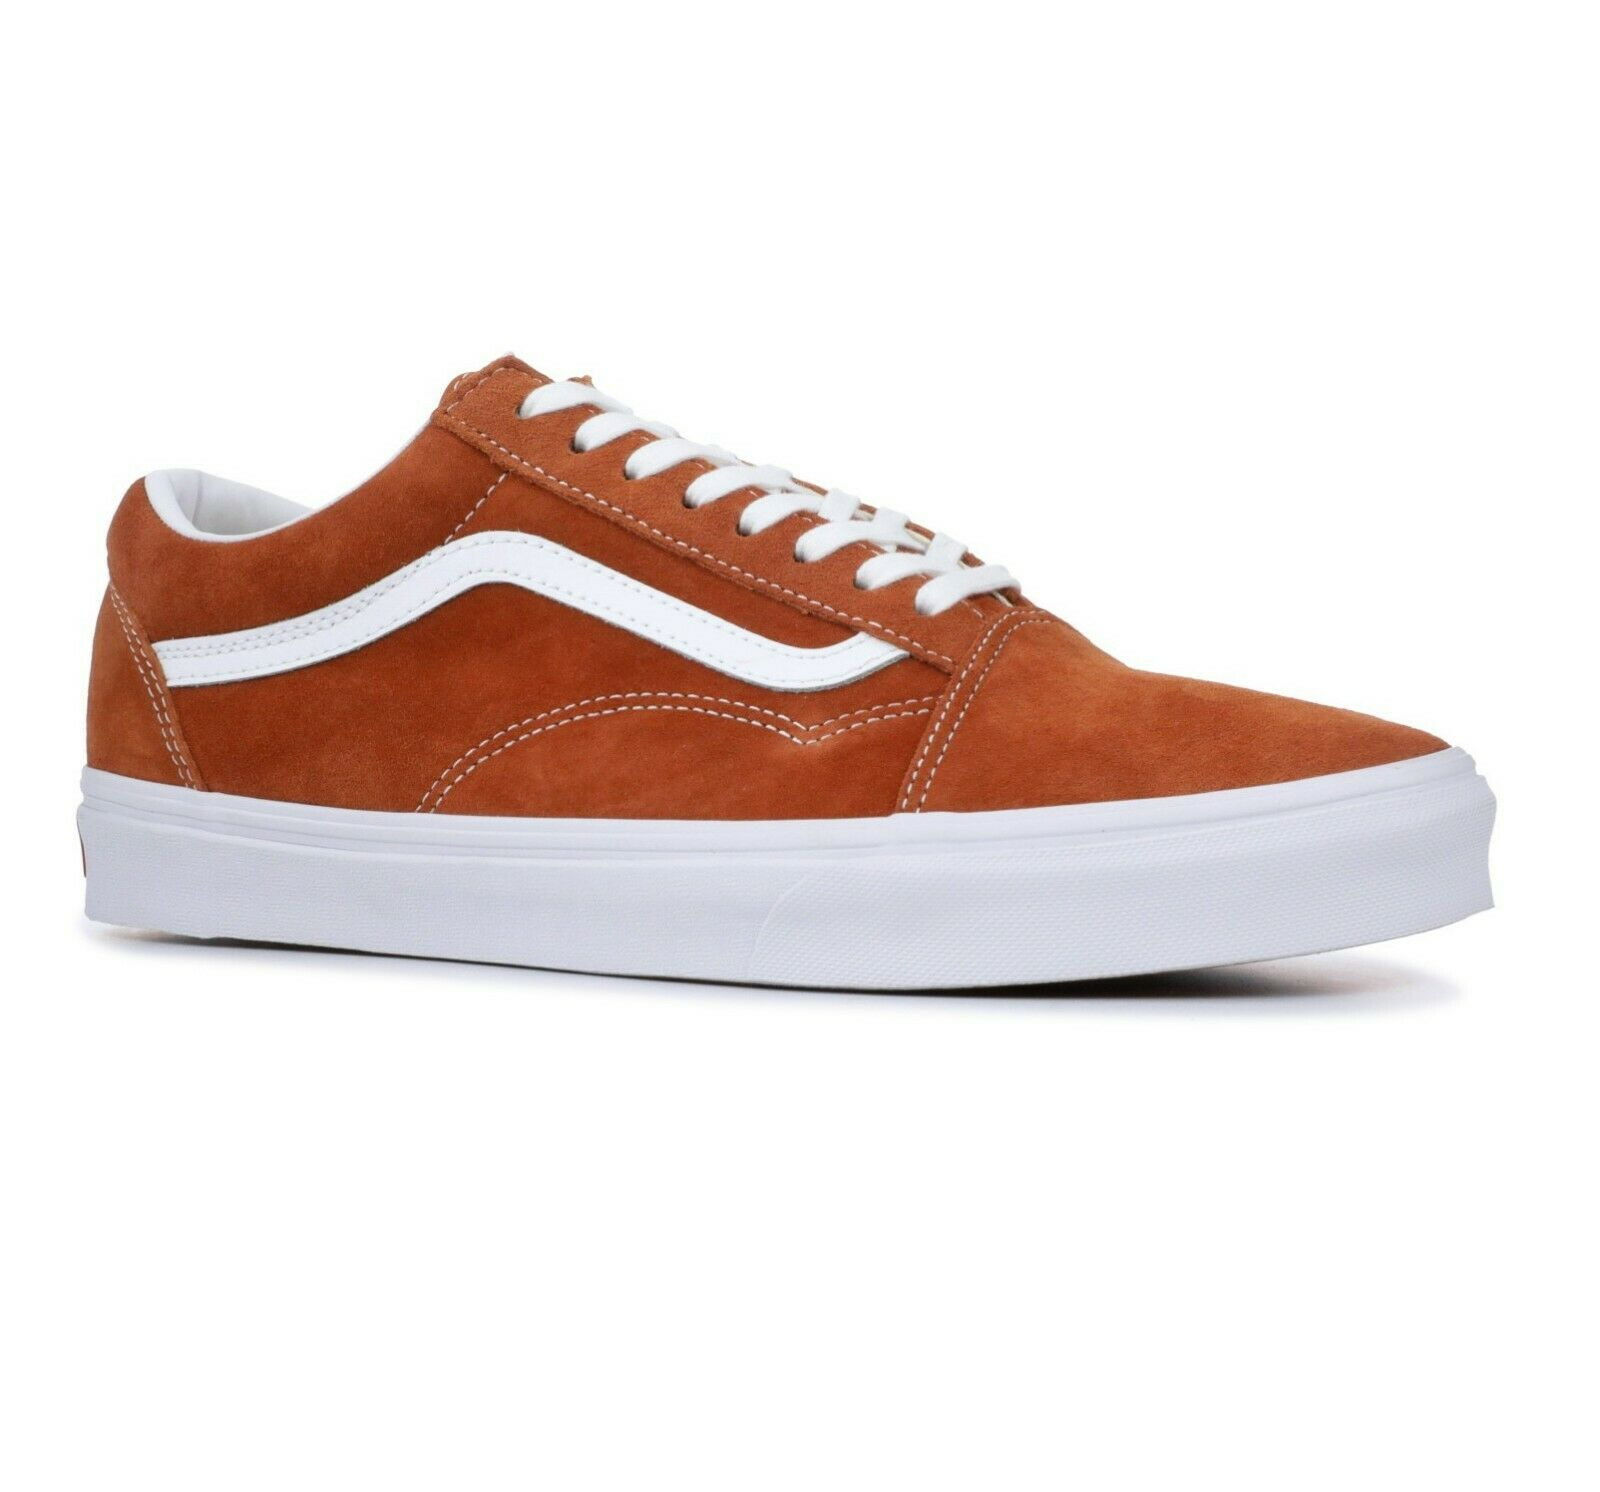 Vans Old Skool (Pig Suede) Suede) Suede) Leather Marronee VN0A38G1U5K Uomo Skate scarpe bee8fb